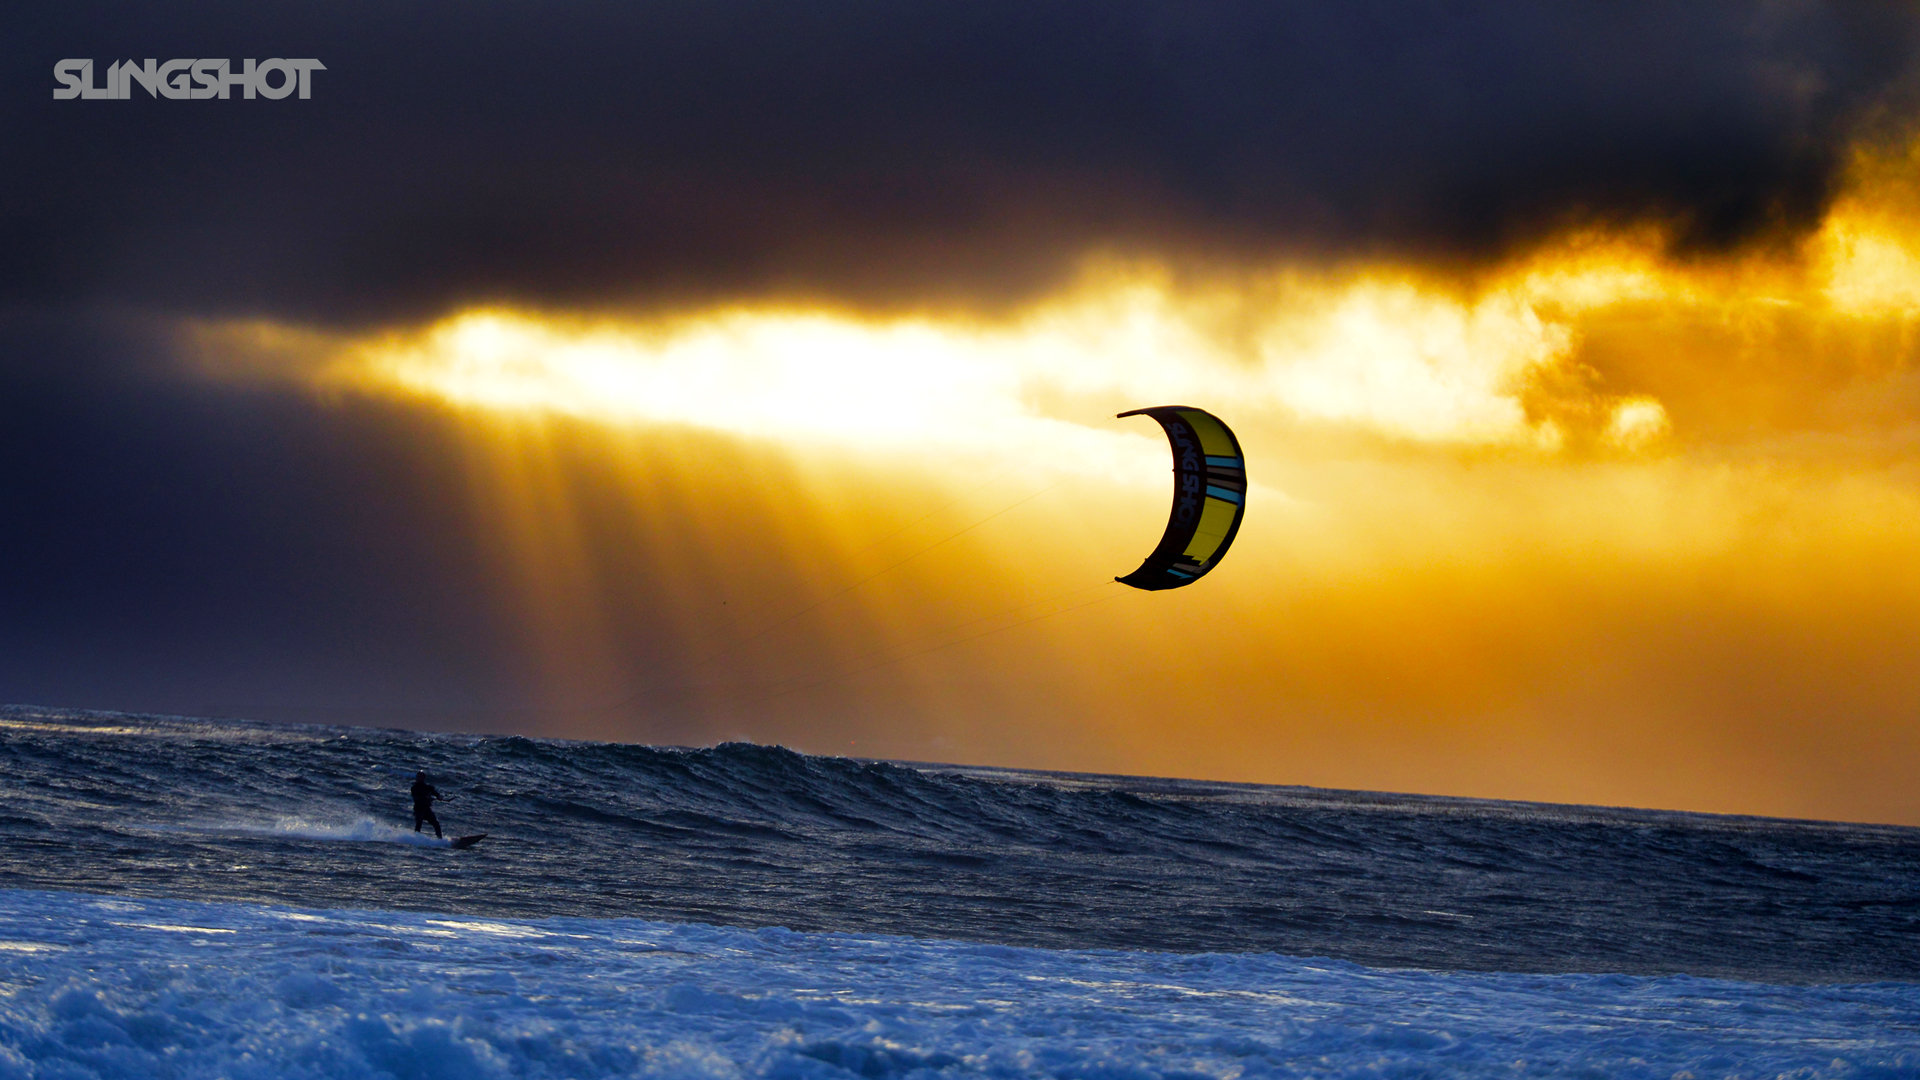 kitesurf wallpaper image - A kitesurfer cruising at sunset with his 2016 Slingshot Wave SST kite. - in resolution: High Definition - HD 16:9 1920 X 1080